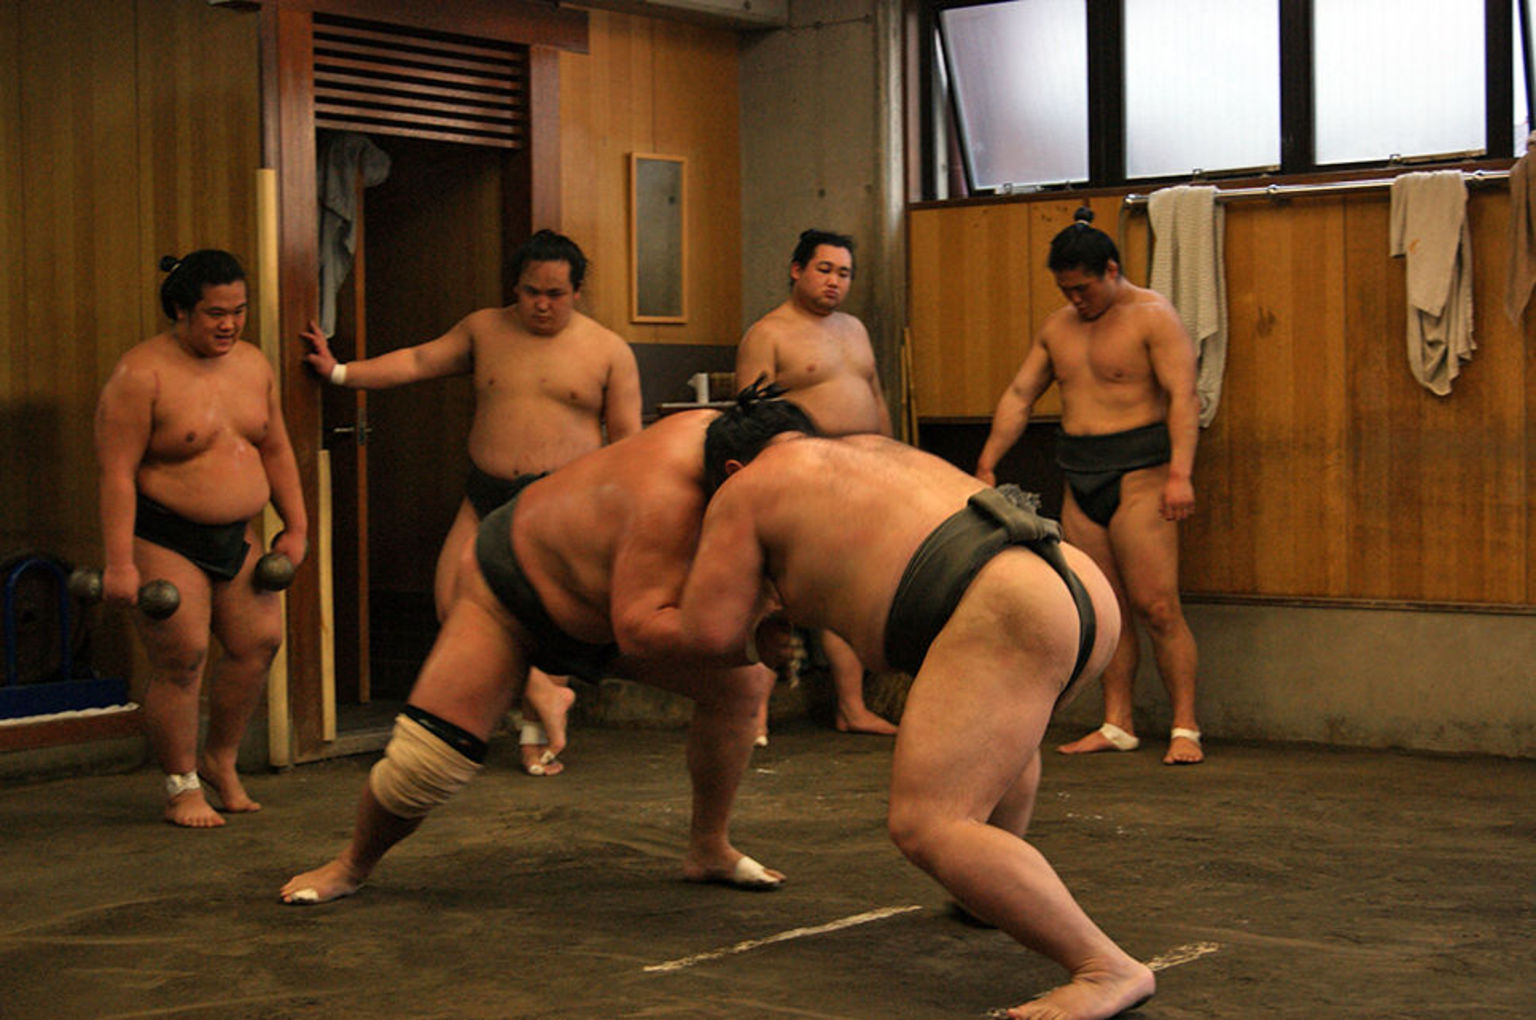 Catch sumo wrestlers in action